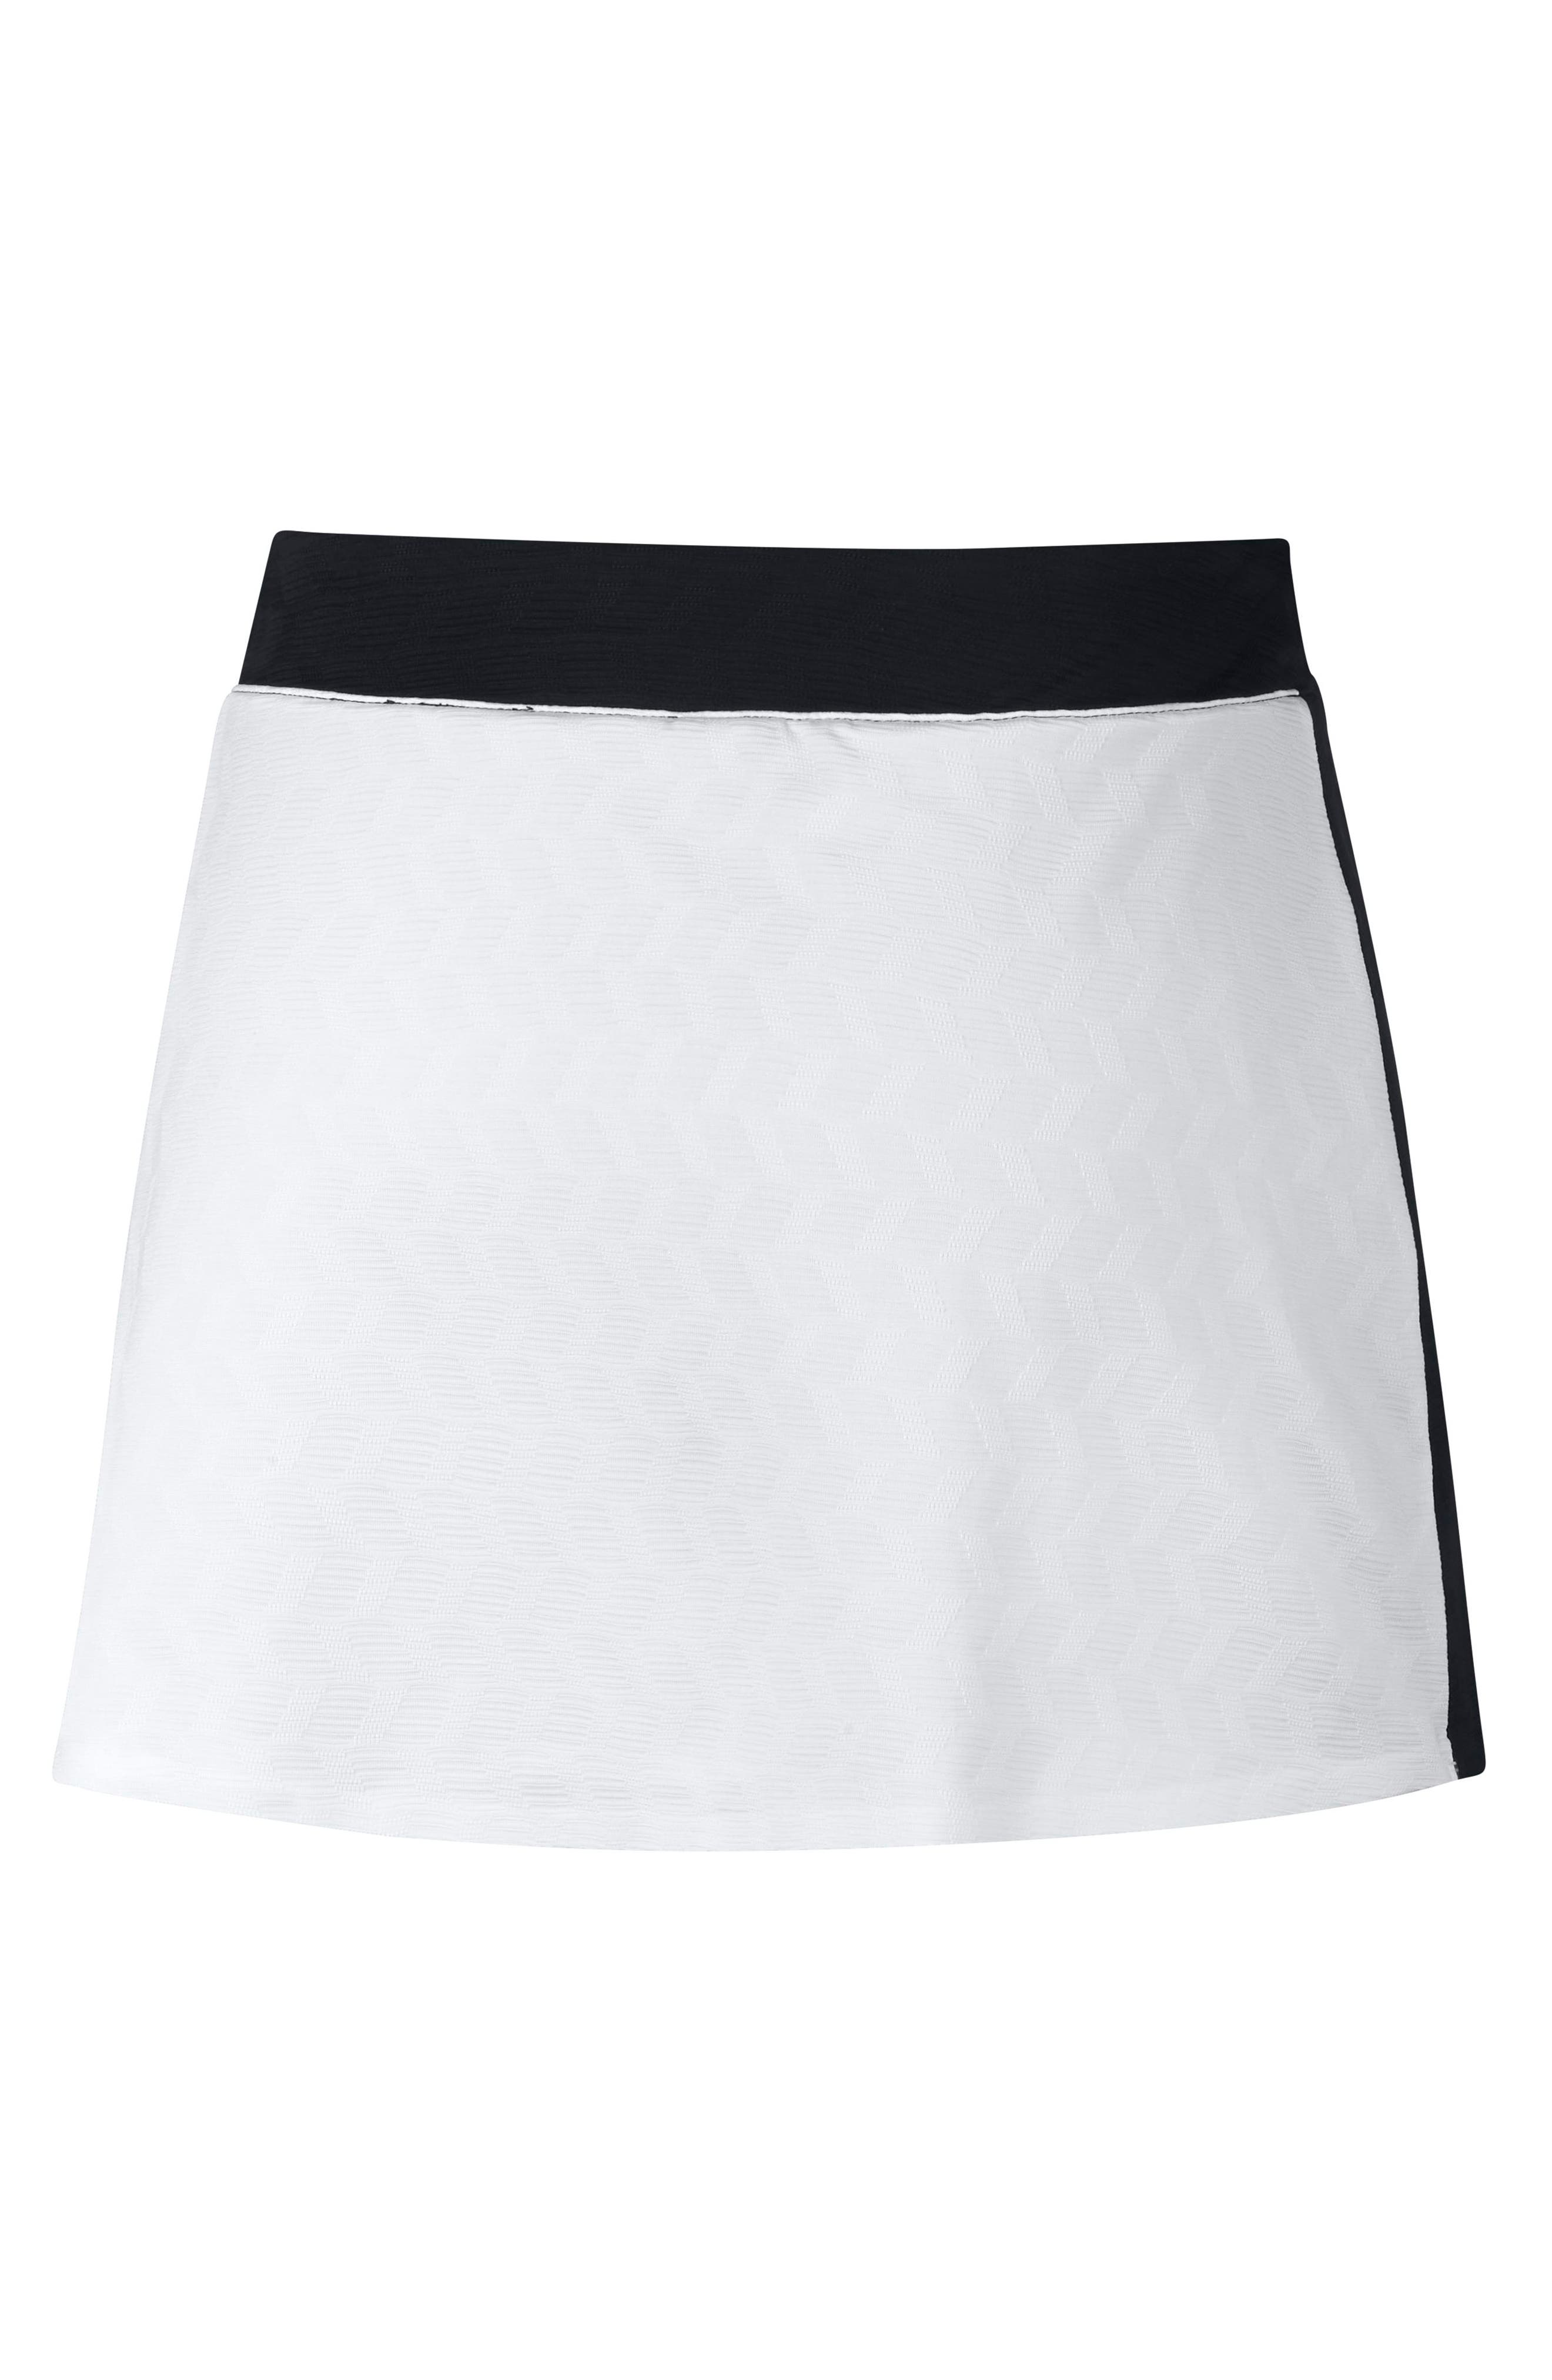 Court Maria Tennis Skirt,                             Alternate thumbnail 8, color,                             010